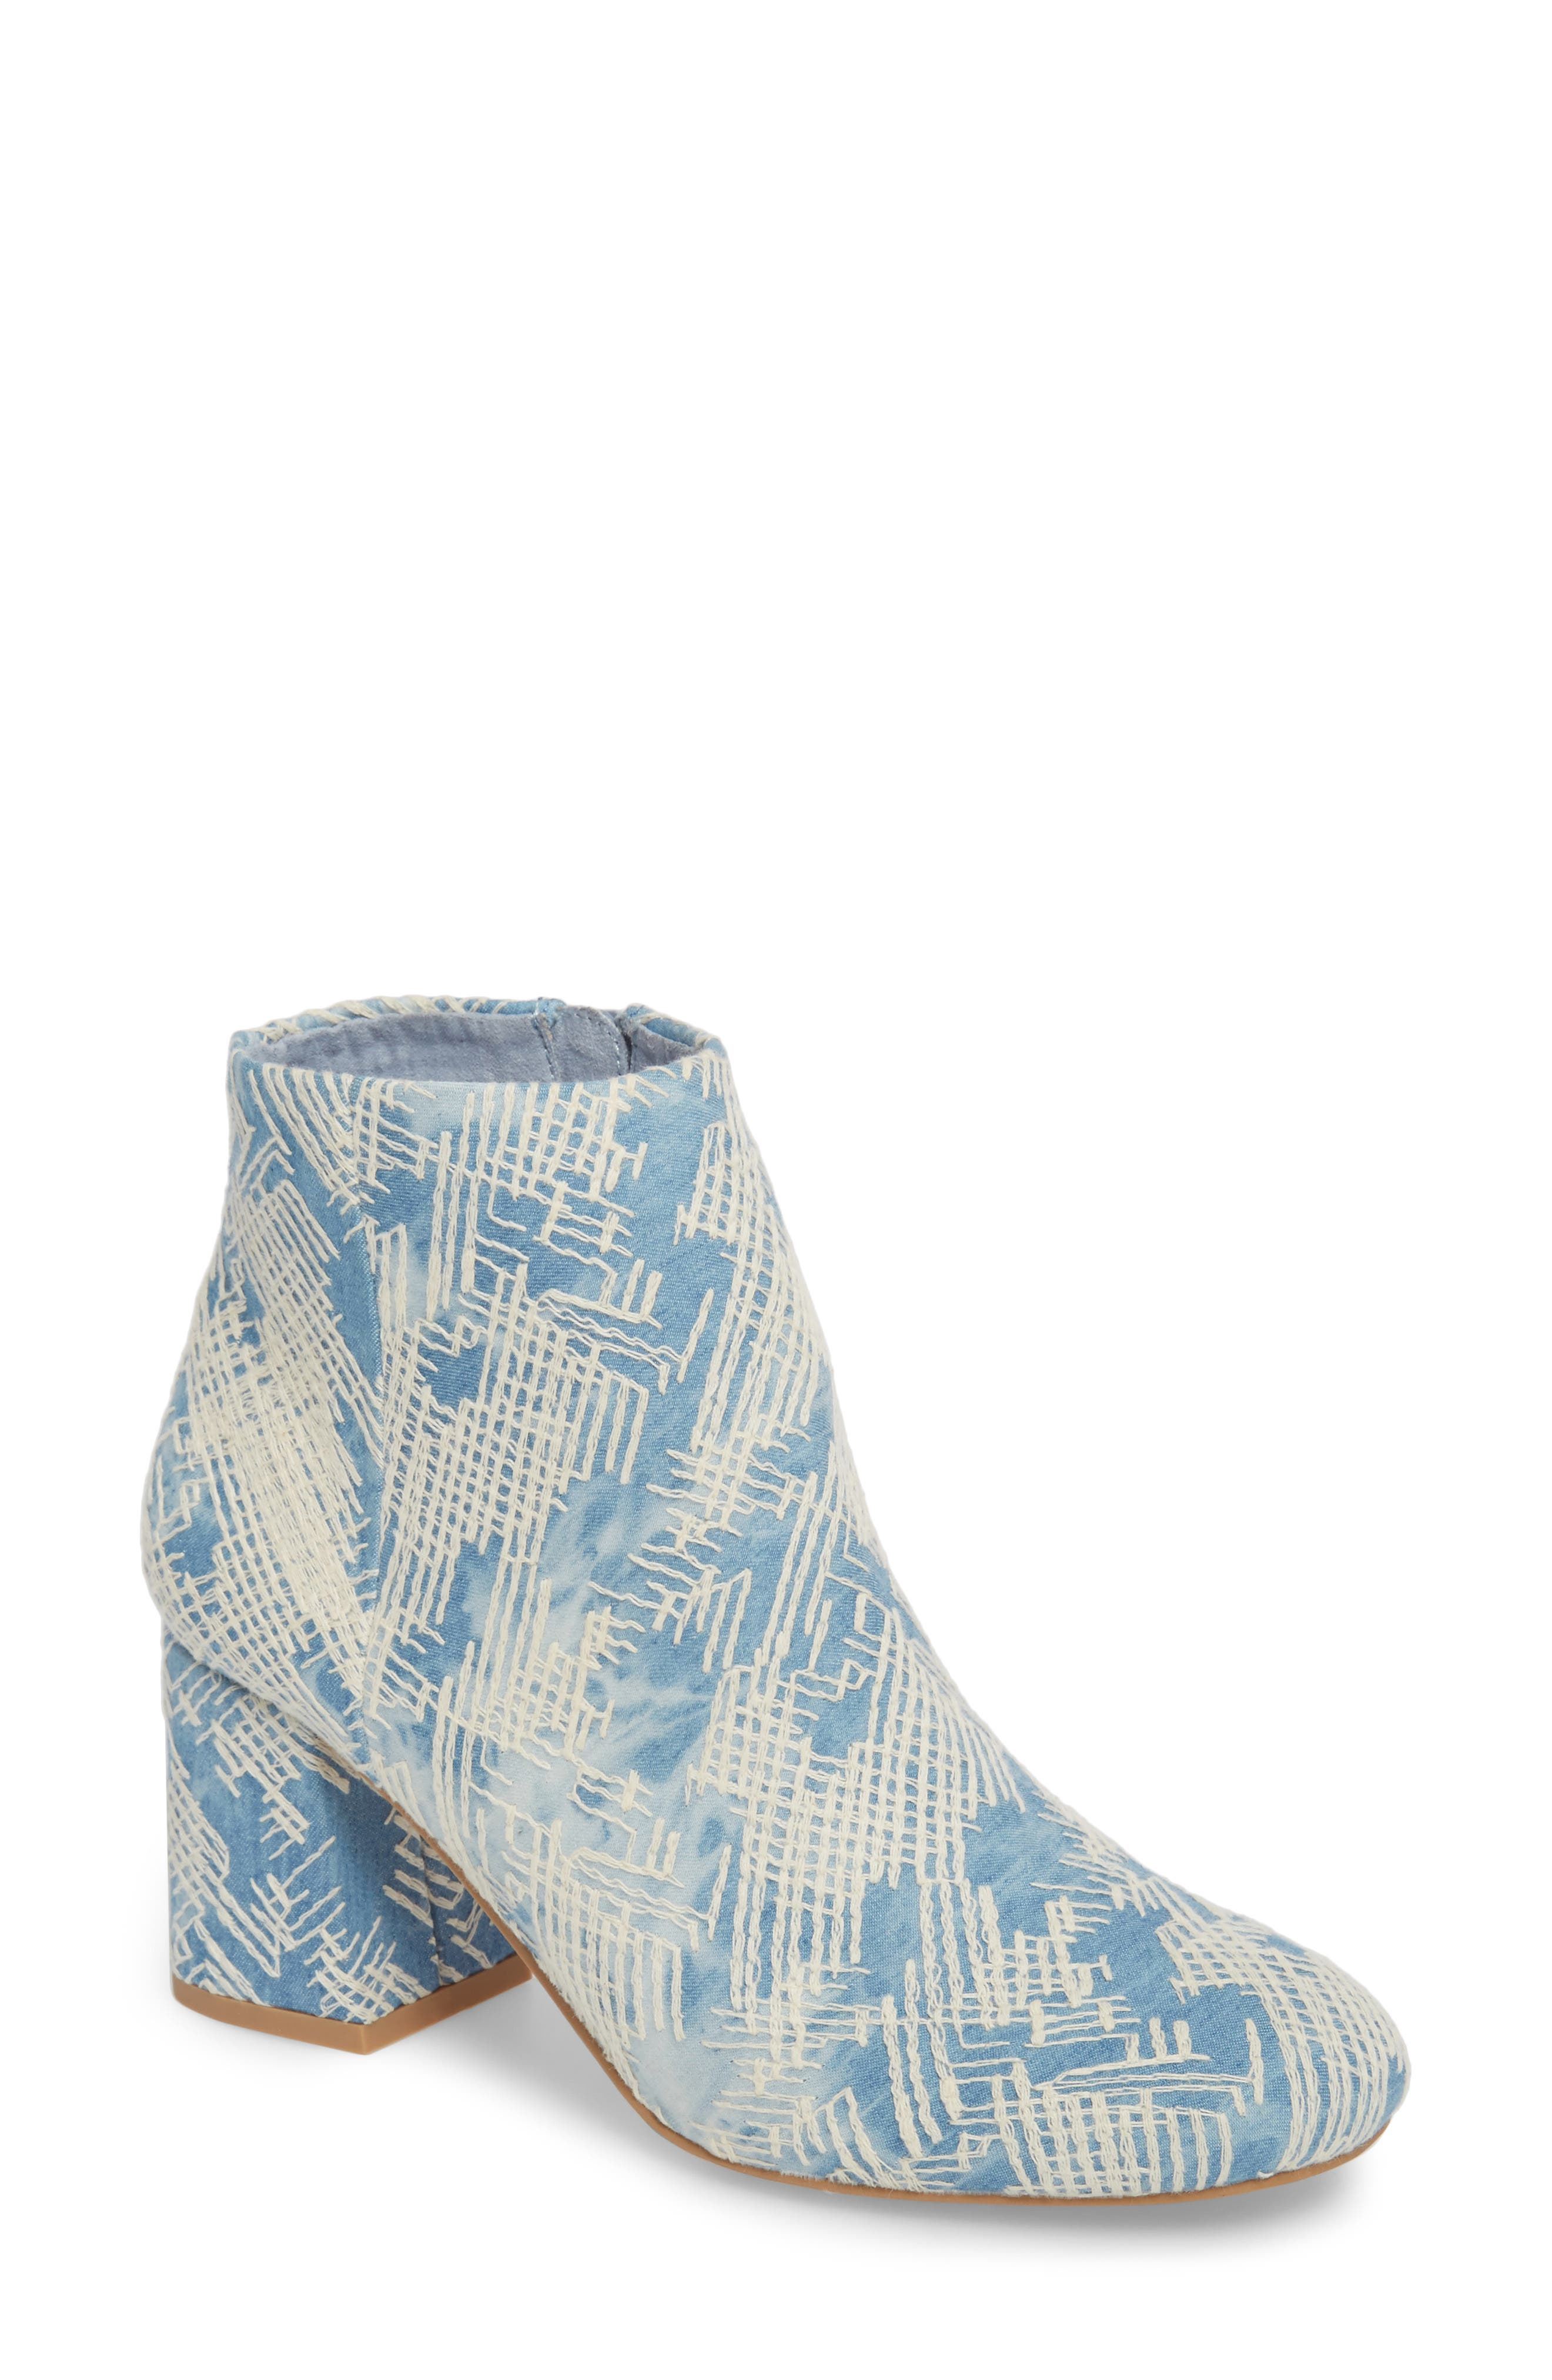 Audition Bootie,                         Main,                         color, Emrboidered Denim